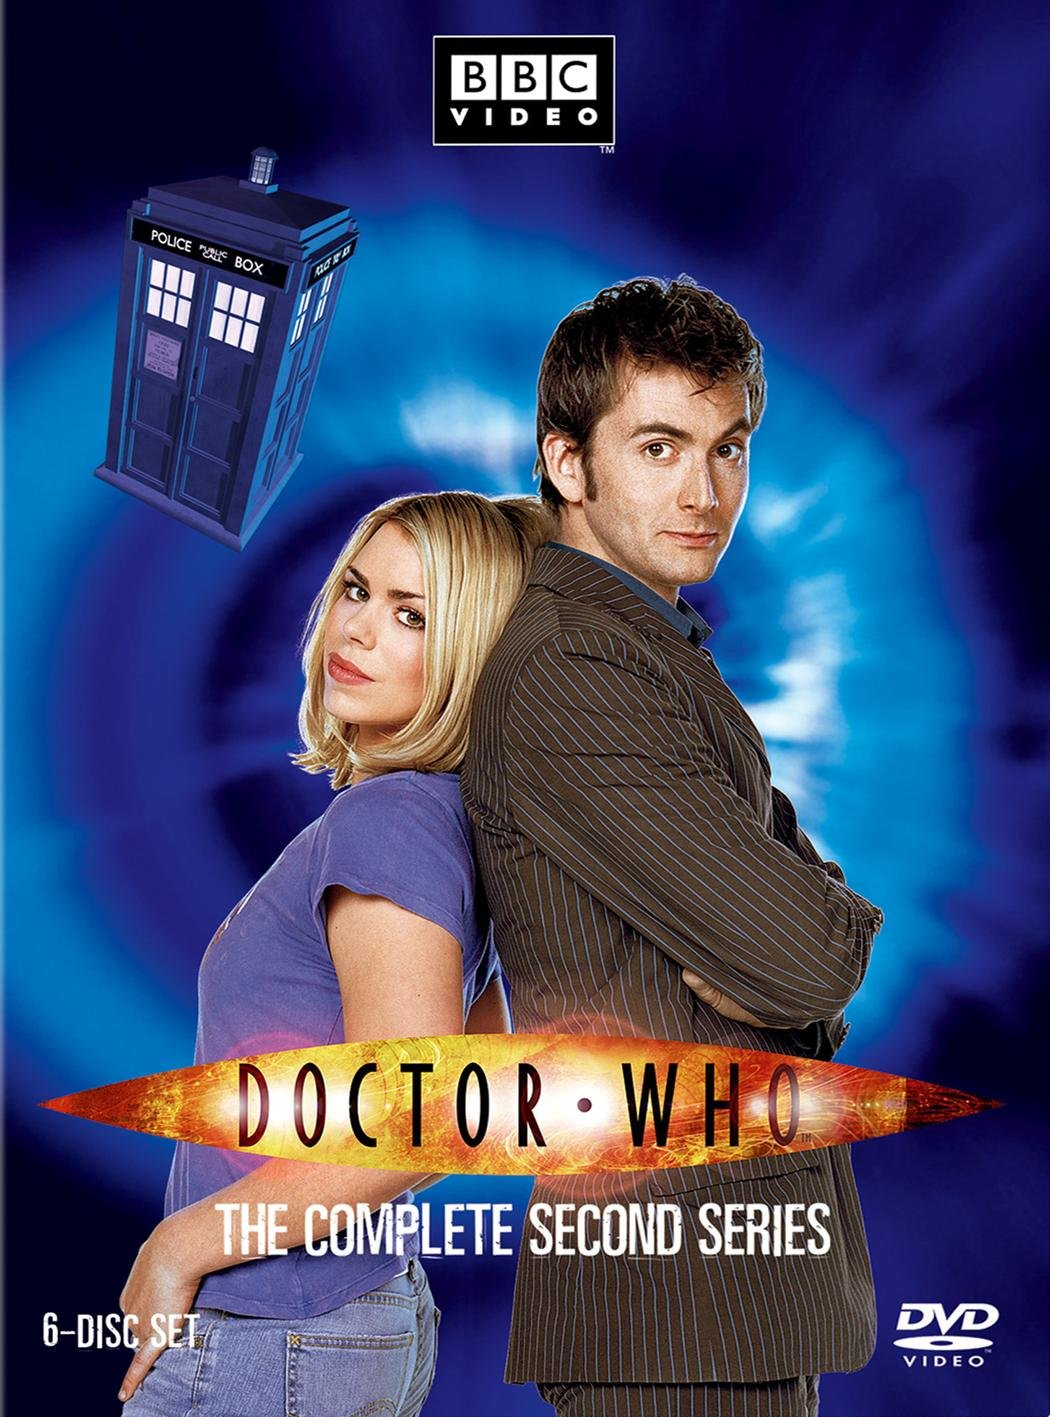 Doctor Who: The Complete Second Series